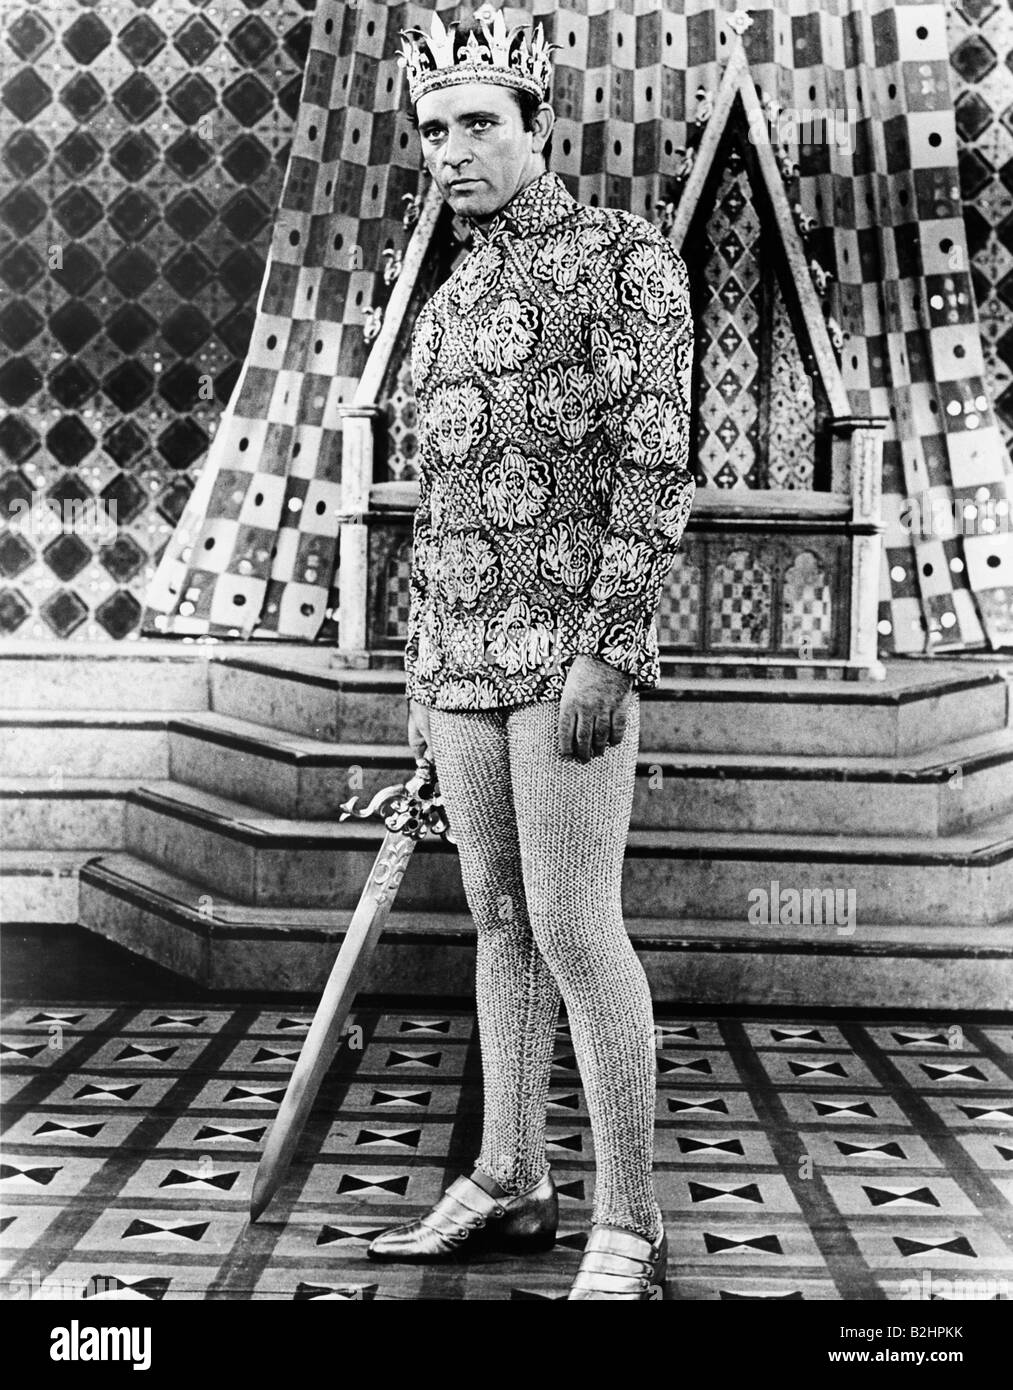 Burton, Richard, 10.11.1925 - 5.8.1984, British actor, full length, in play 'Camelot', 1960, Additional - Stock Image